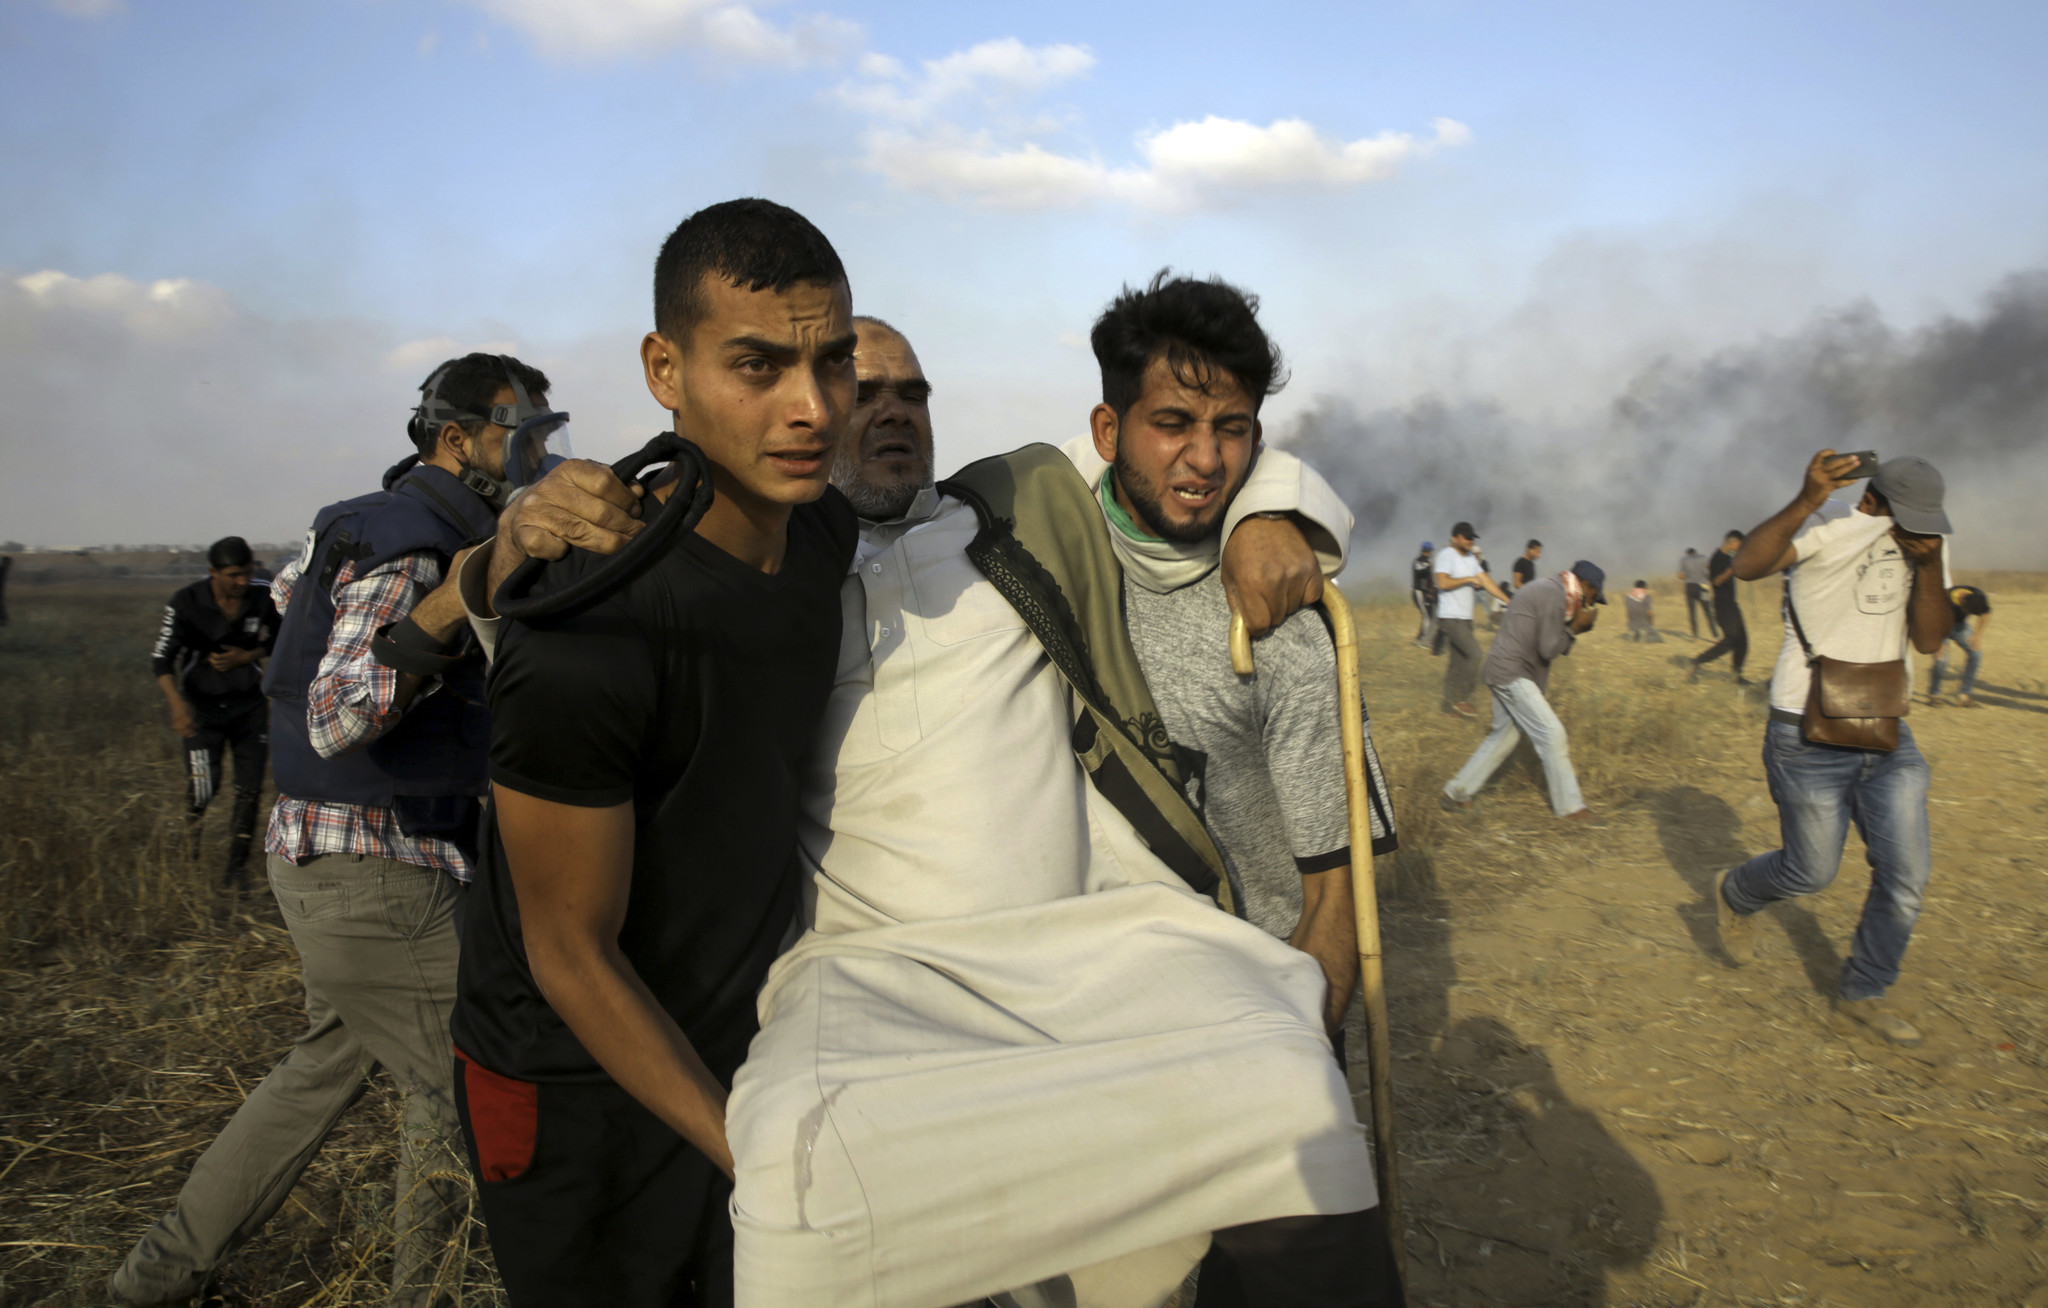 Protests Resume After Funeral For Palestinian Paramedic